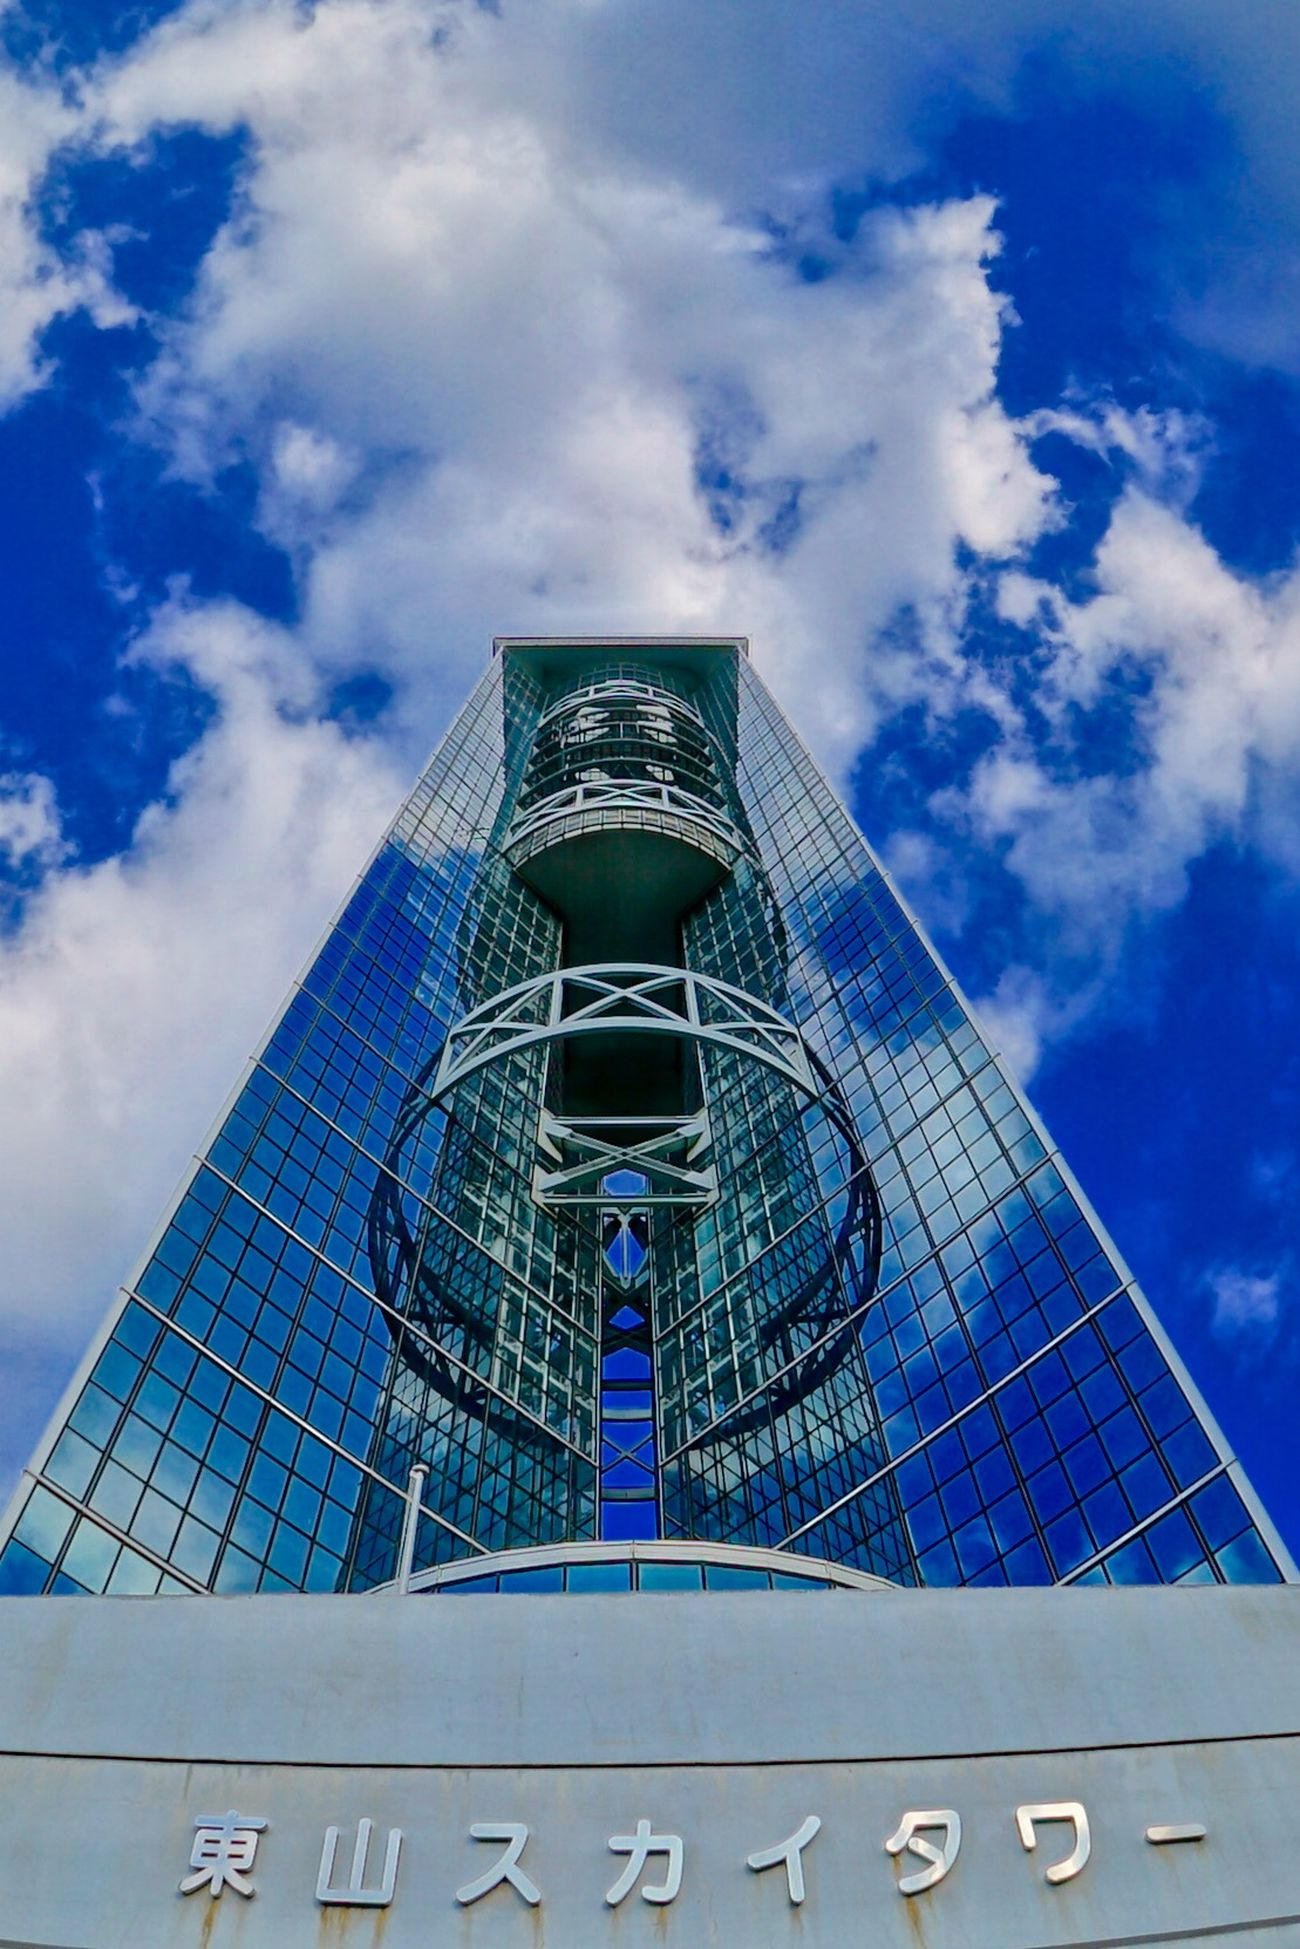 EyeEm Best Shots - Reflections Reflection 空 Blue Sky 名古屋 Tower